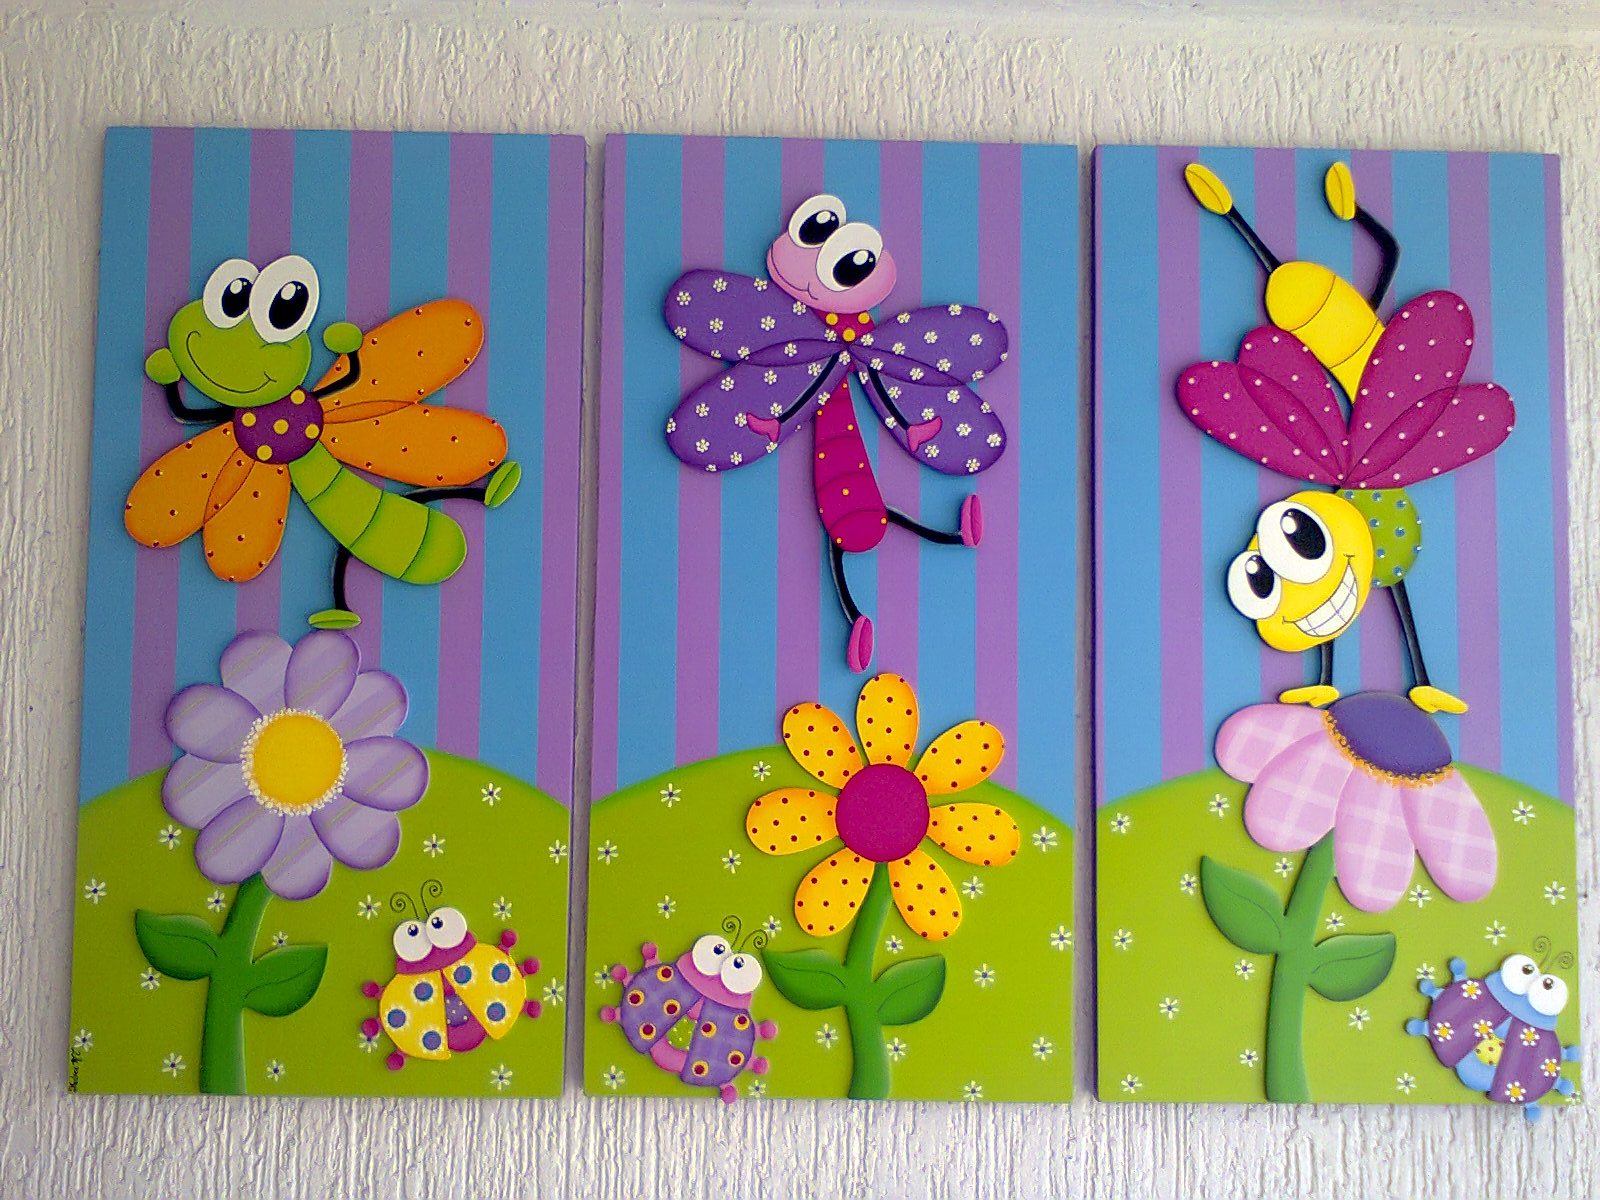 Aventuras country cuadros infantiles for Pinturas para decorar